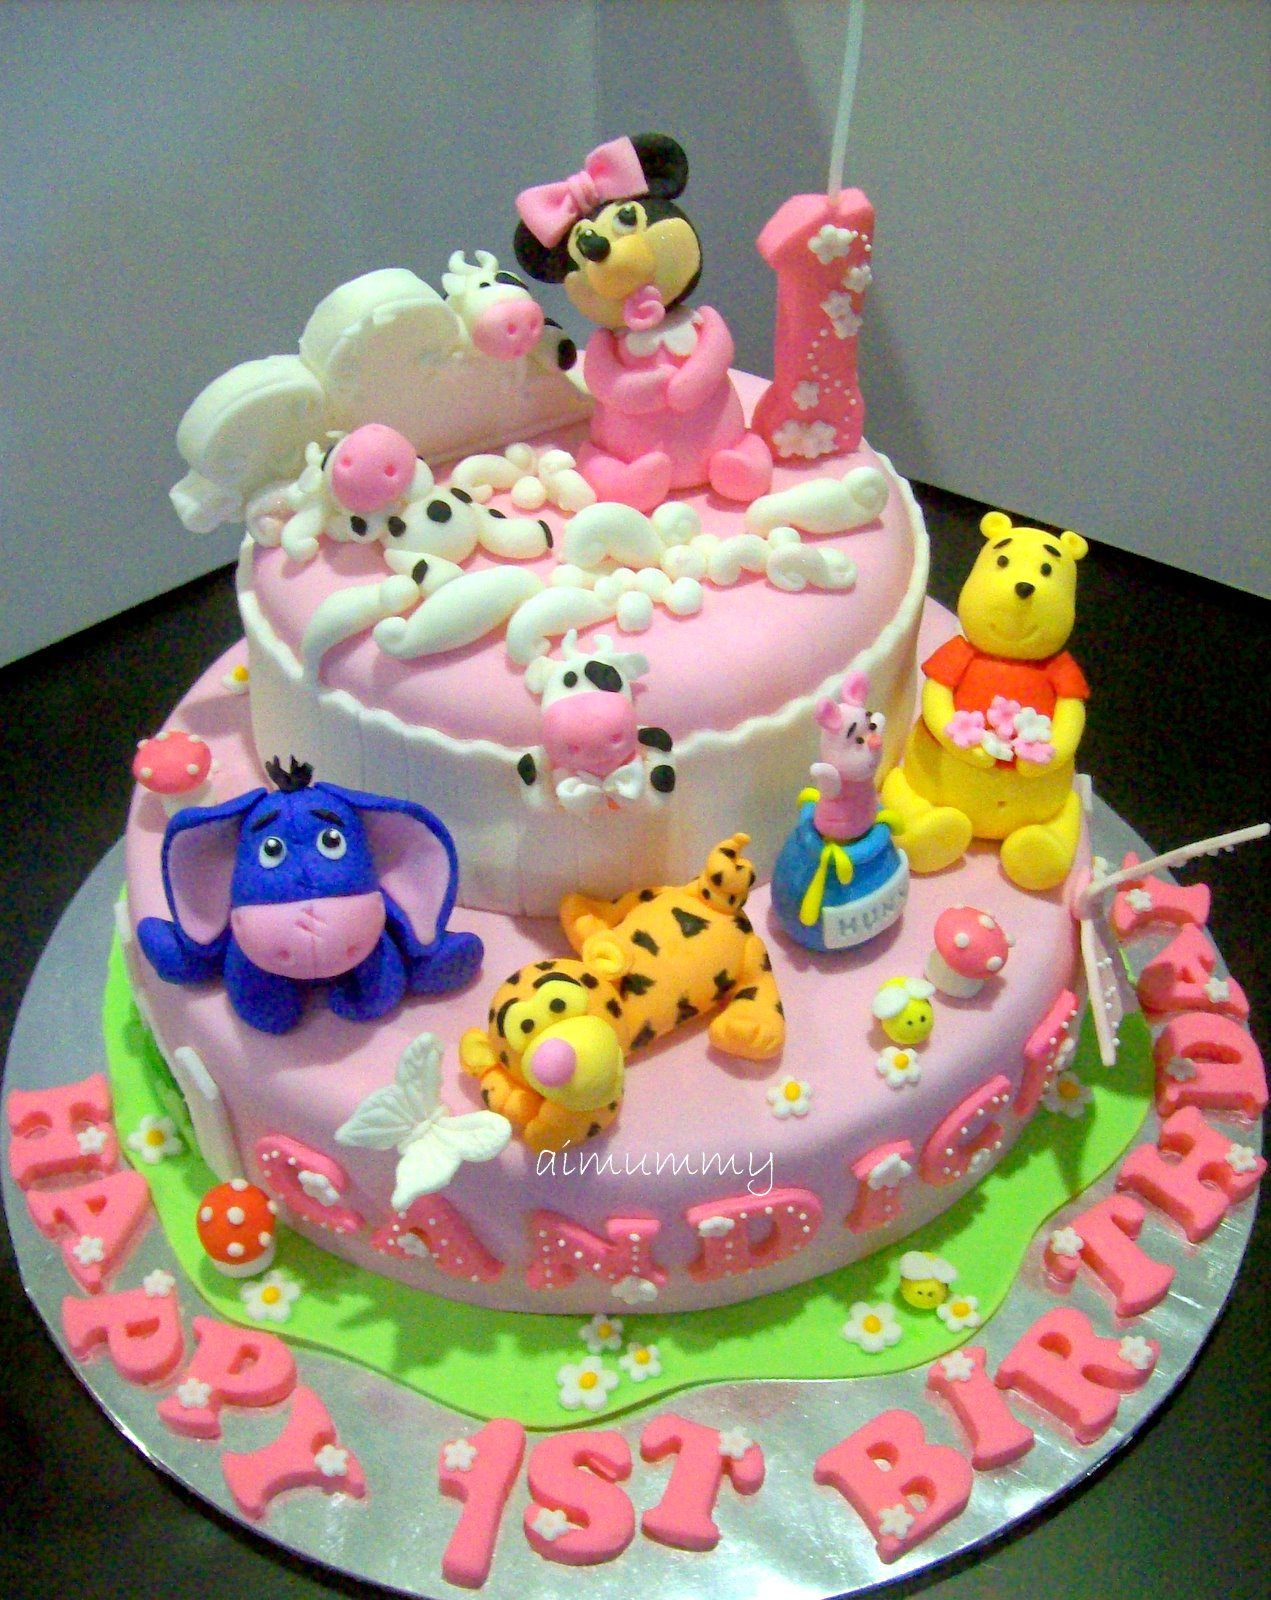 Cake Designs Of Birthday : AiMummy: Another sweet pooh & minnie cake